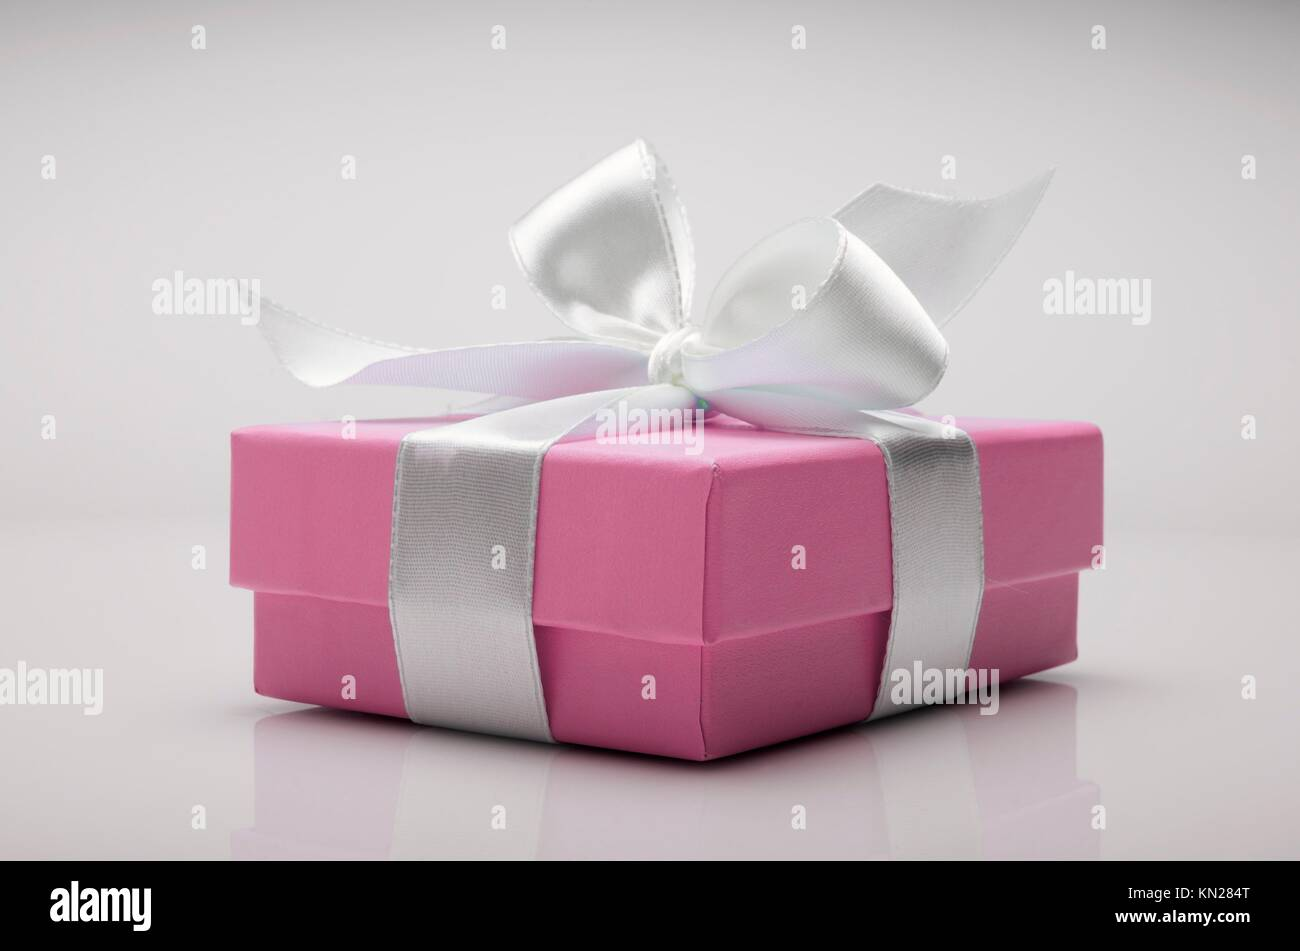 small pink box tied with a white ribbon Stock Photo: 167851400 - Alamy